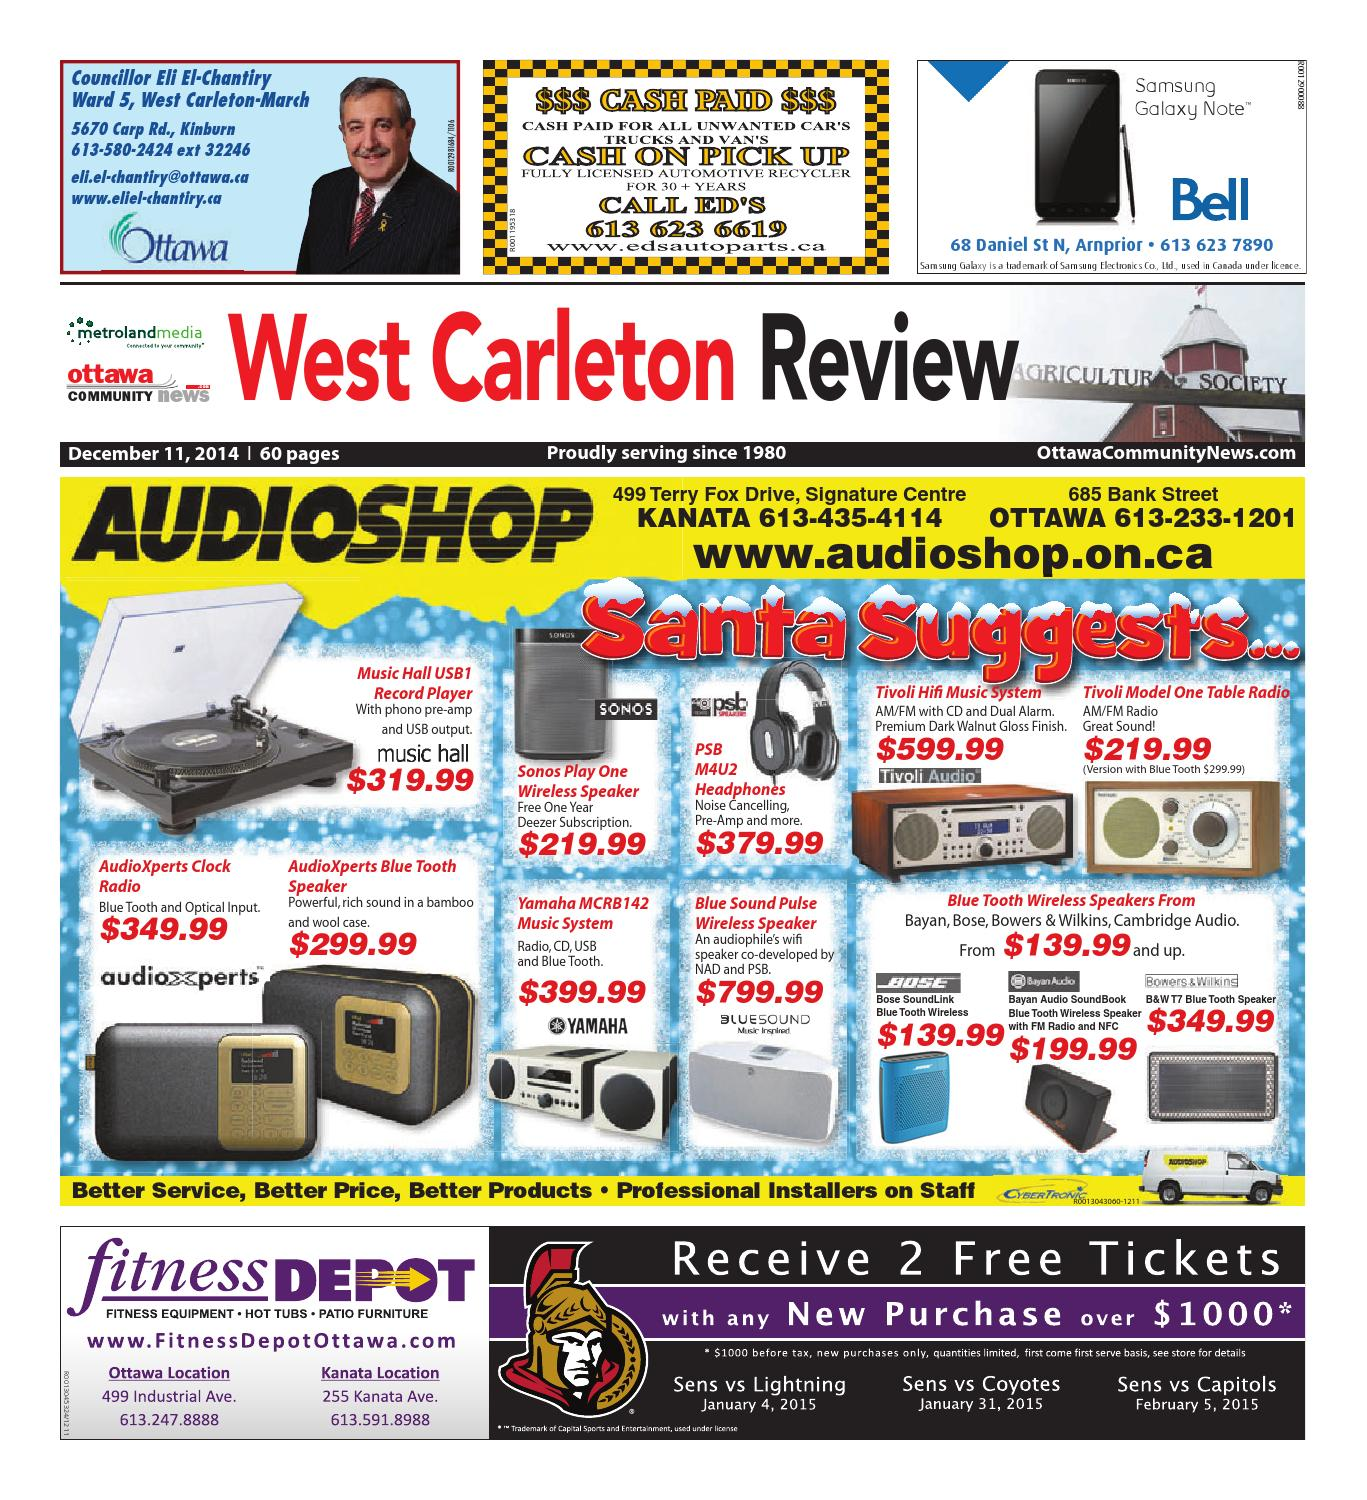 Westcarleton121114 by Metroland East - West Carleton Review